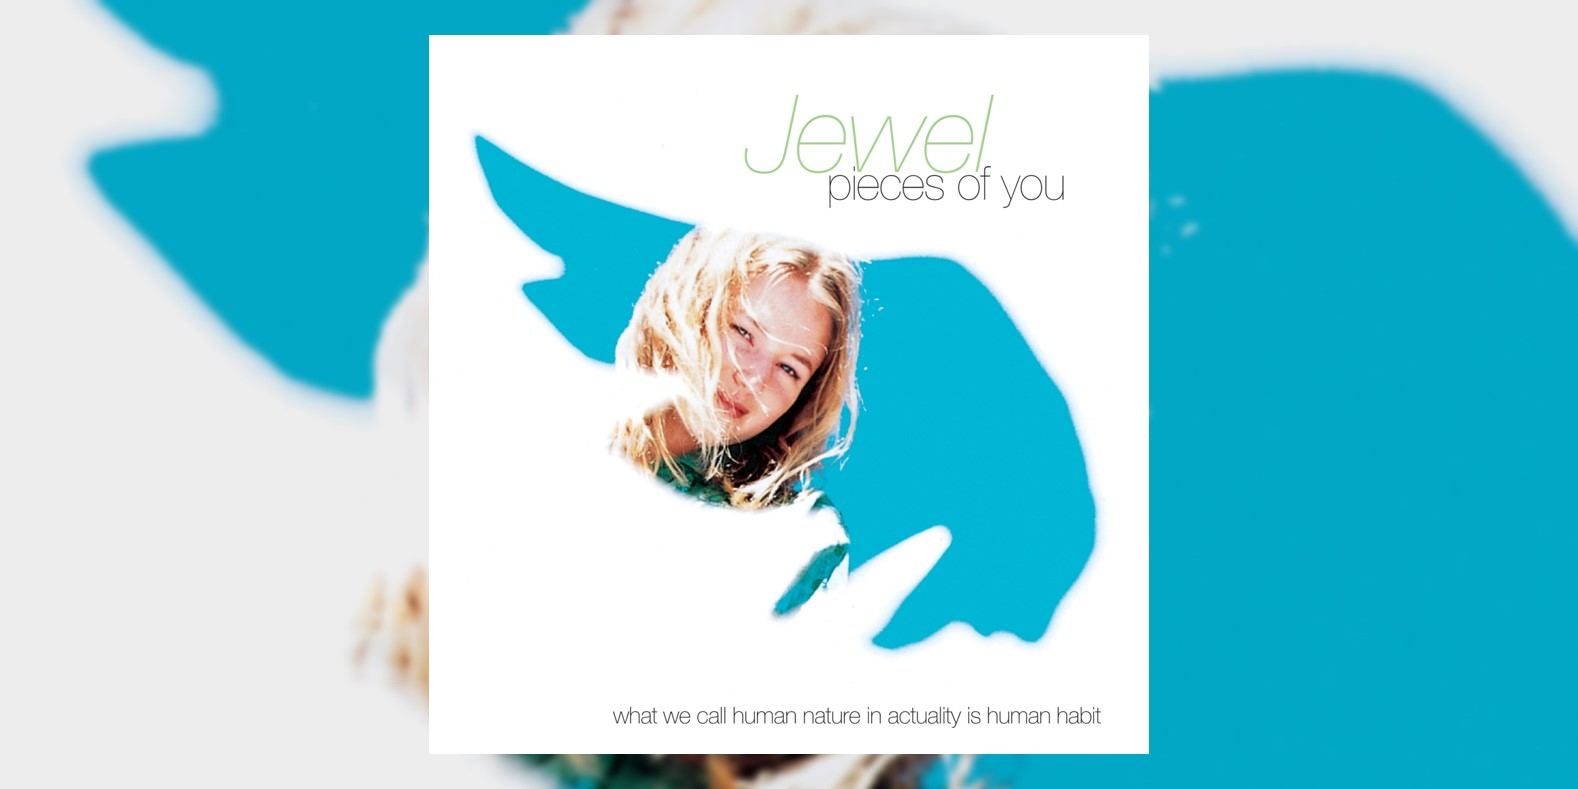 Albumism_Jewel_PiecesOfYou_MainImage.jpg